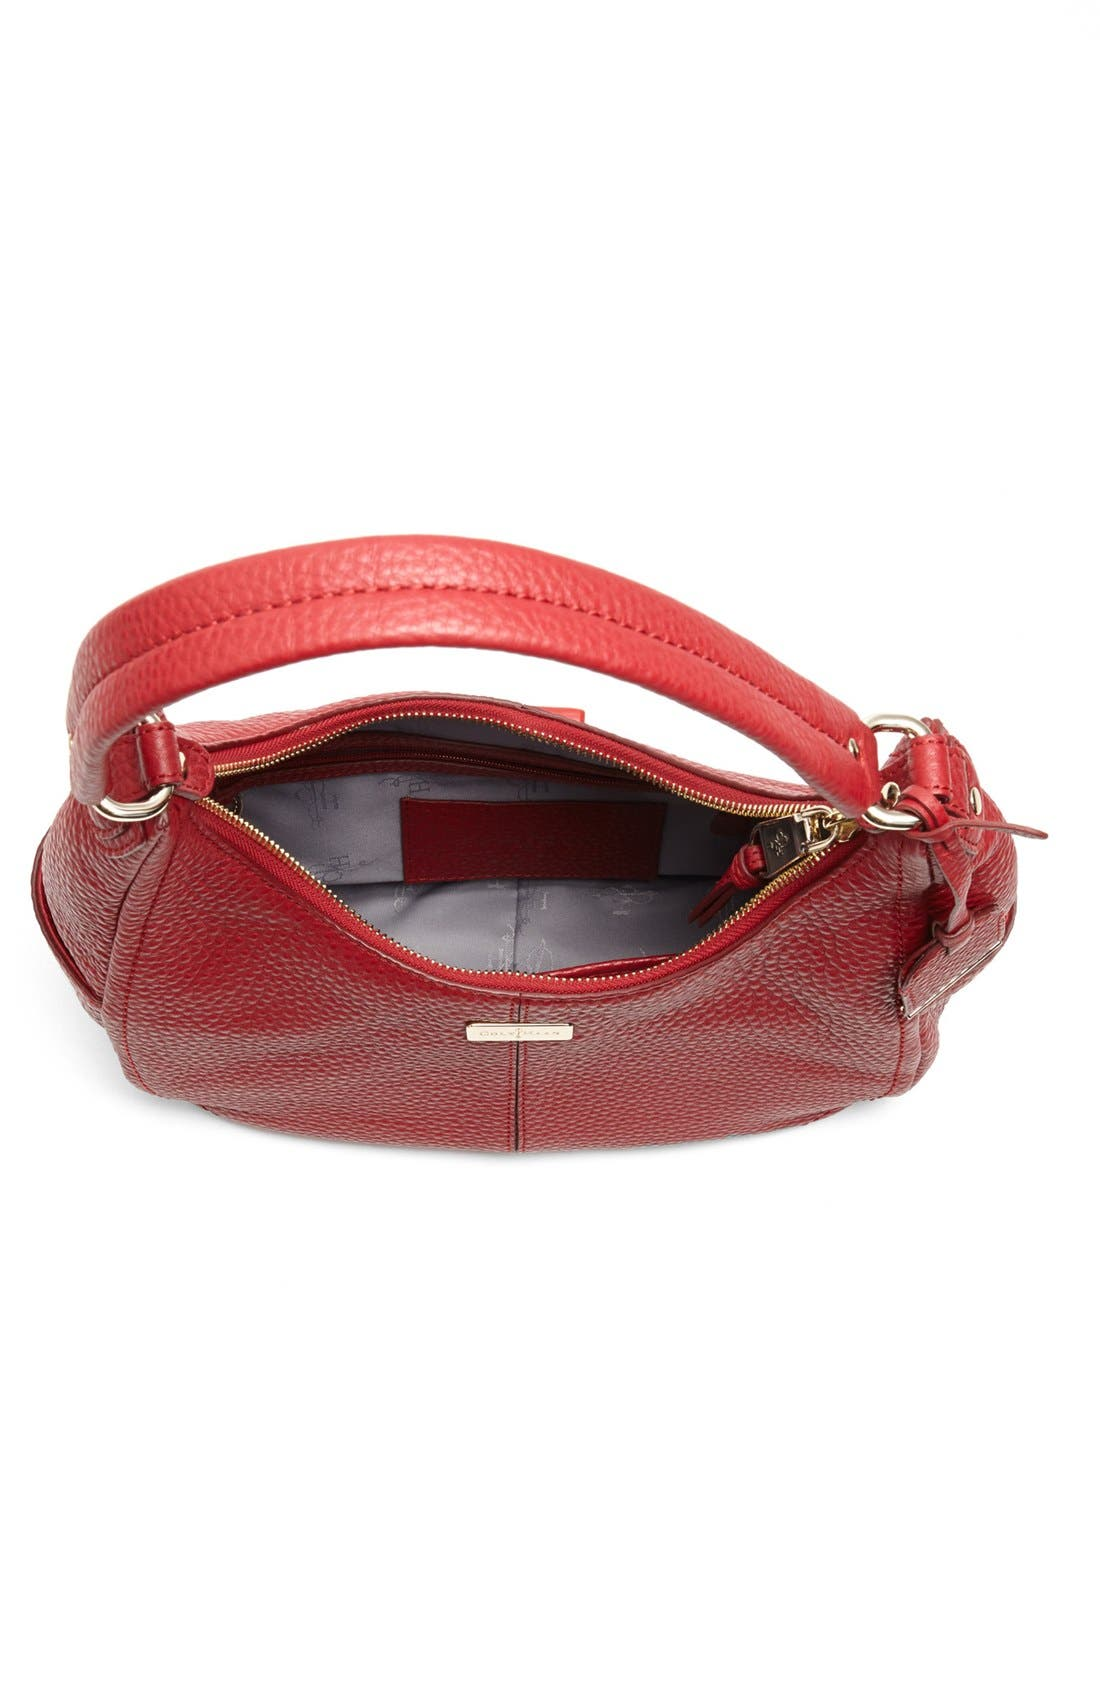 Alternate Image 3  - Cole Haan 'Village - Small' Hobo